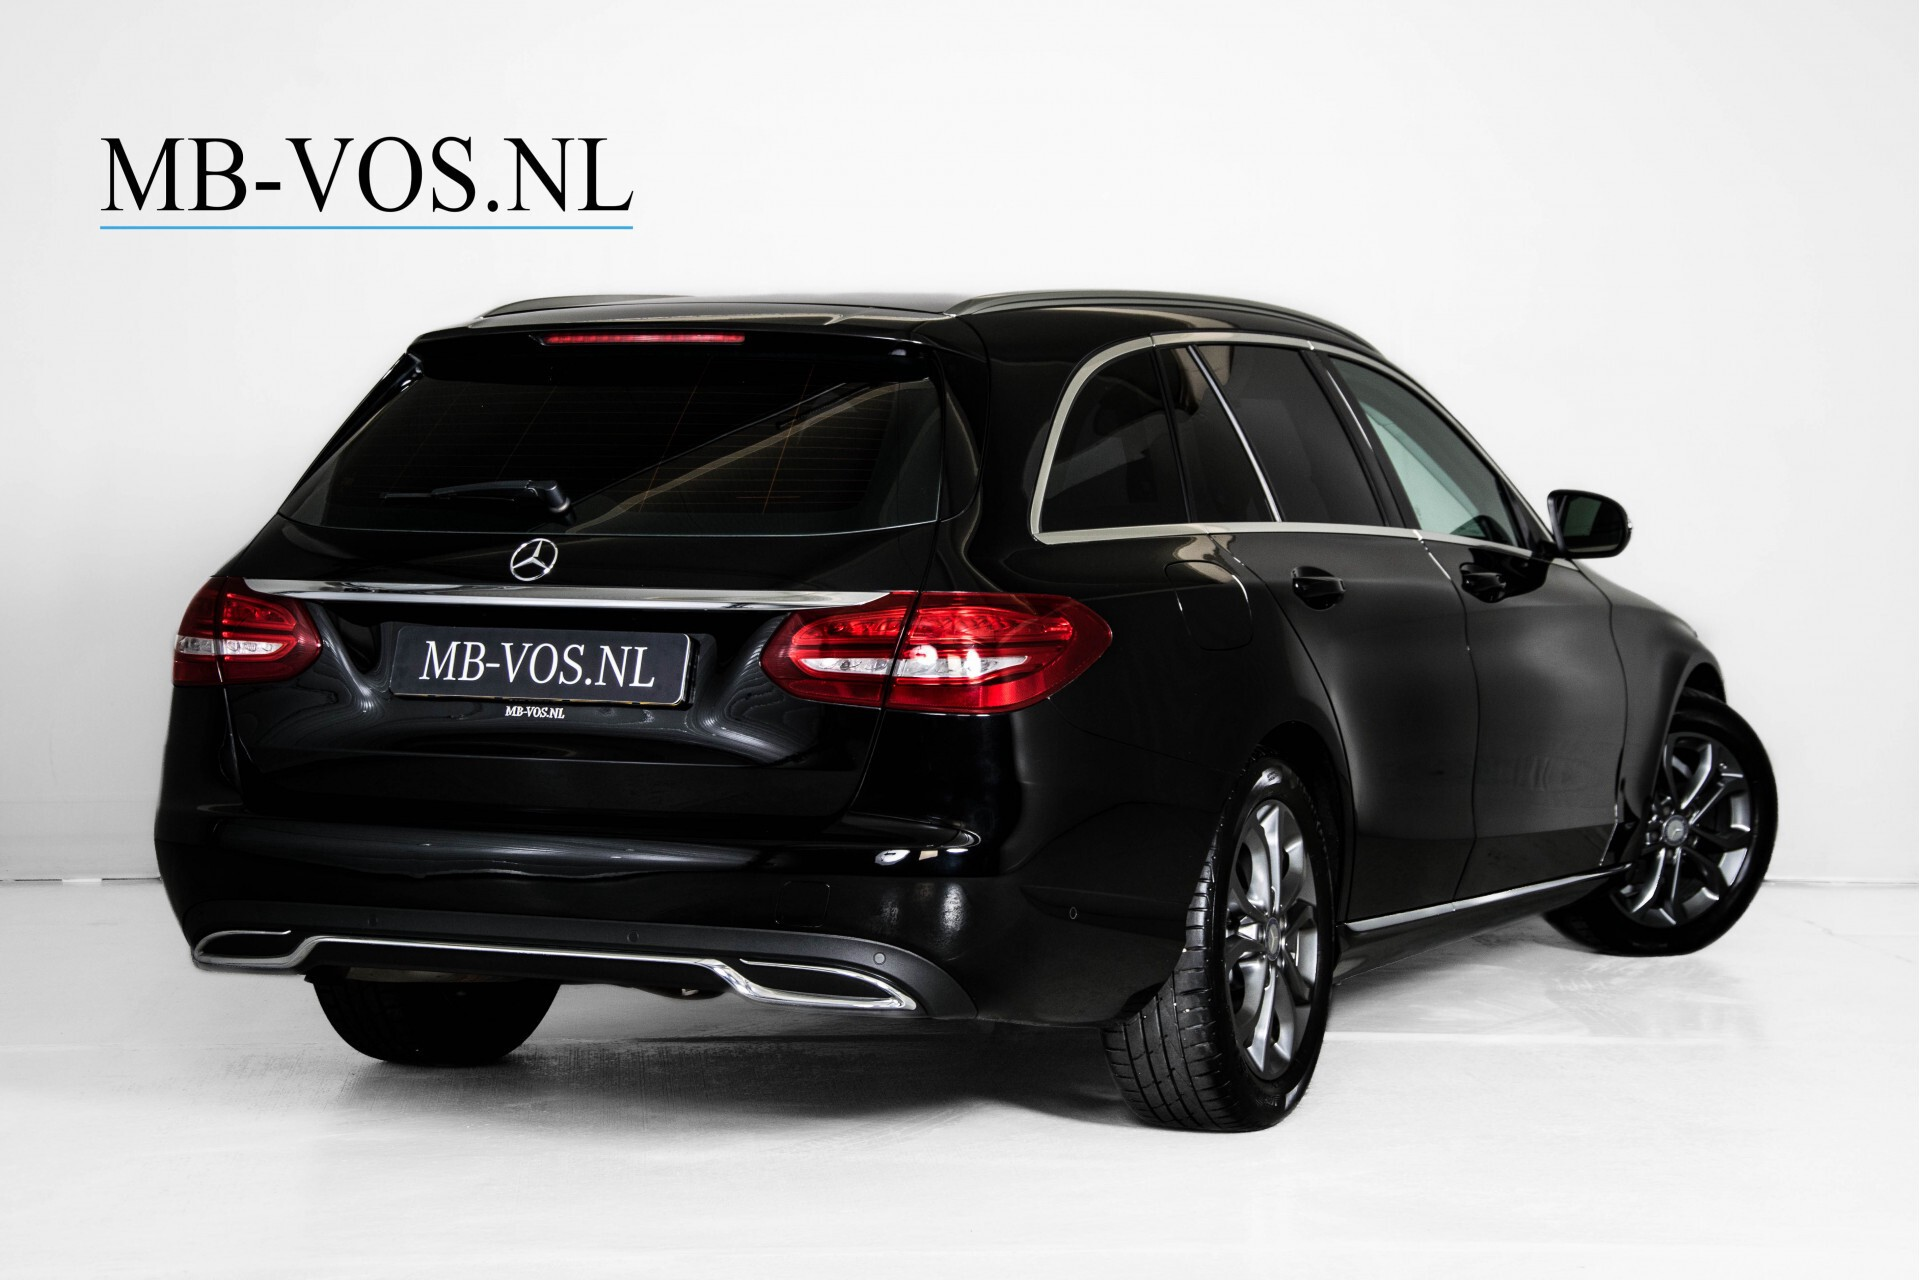 Mercedes-Benz C-Klasse Estate 180 Avantgarde LED/Navi/Privacyglas/Pts/Aut-koffer Aut7 Foto 2